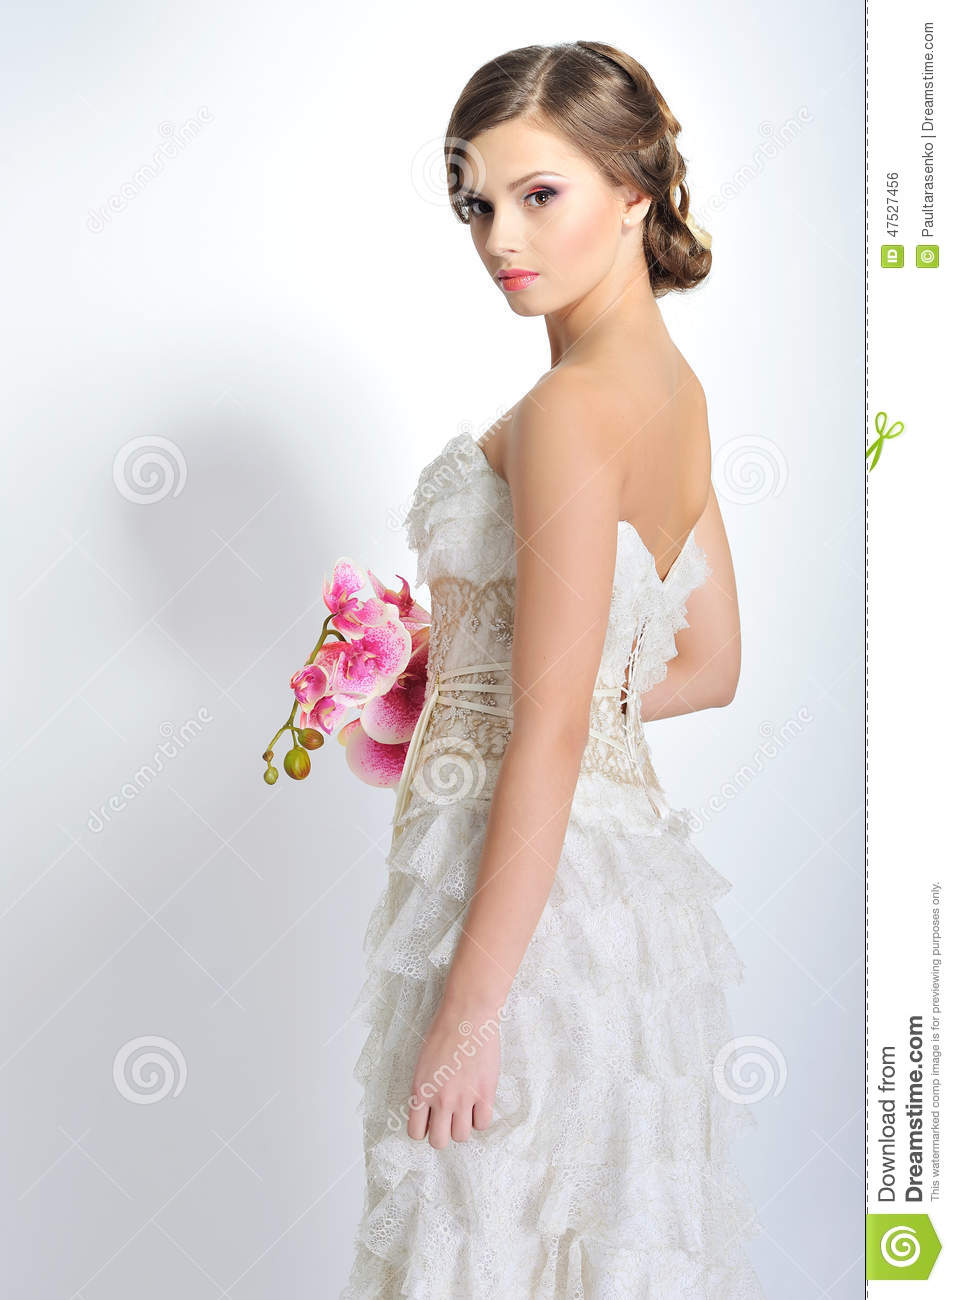 Slim beautiful woman with flowers wearing luxurious wedding dress over white studio background